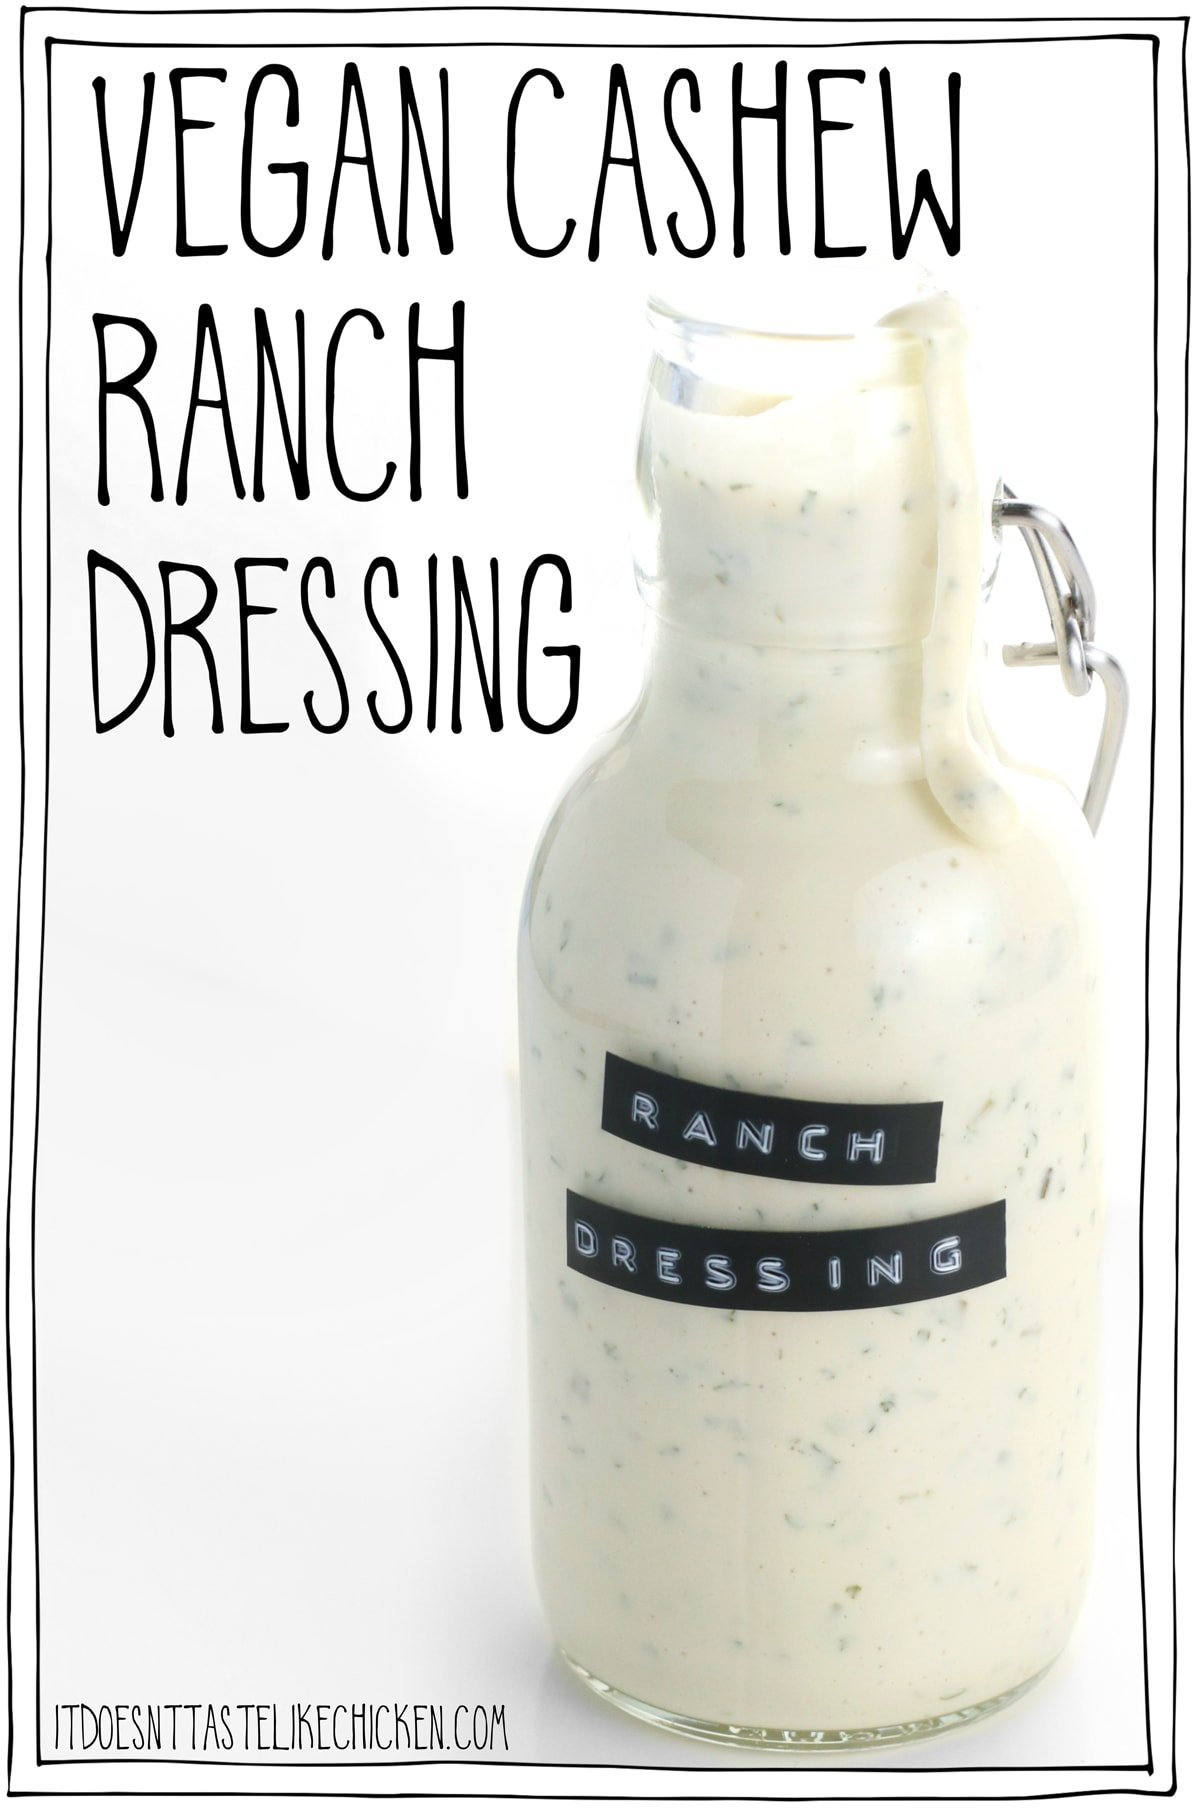 Vegan Cashew Ranch Dressing! 9 ingredients and 15 minutes or less to make. This creamy dressing tastes just like the classic but it's dairy-free, healthy, oil-free, whole food plant-based! Drizzle this over every salad, bowl, or you can even use it as a dip. #itdoesnttastelikechicken #veganrecipes #wfpb